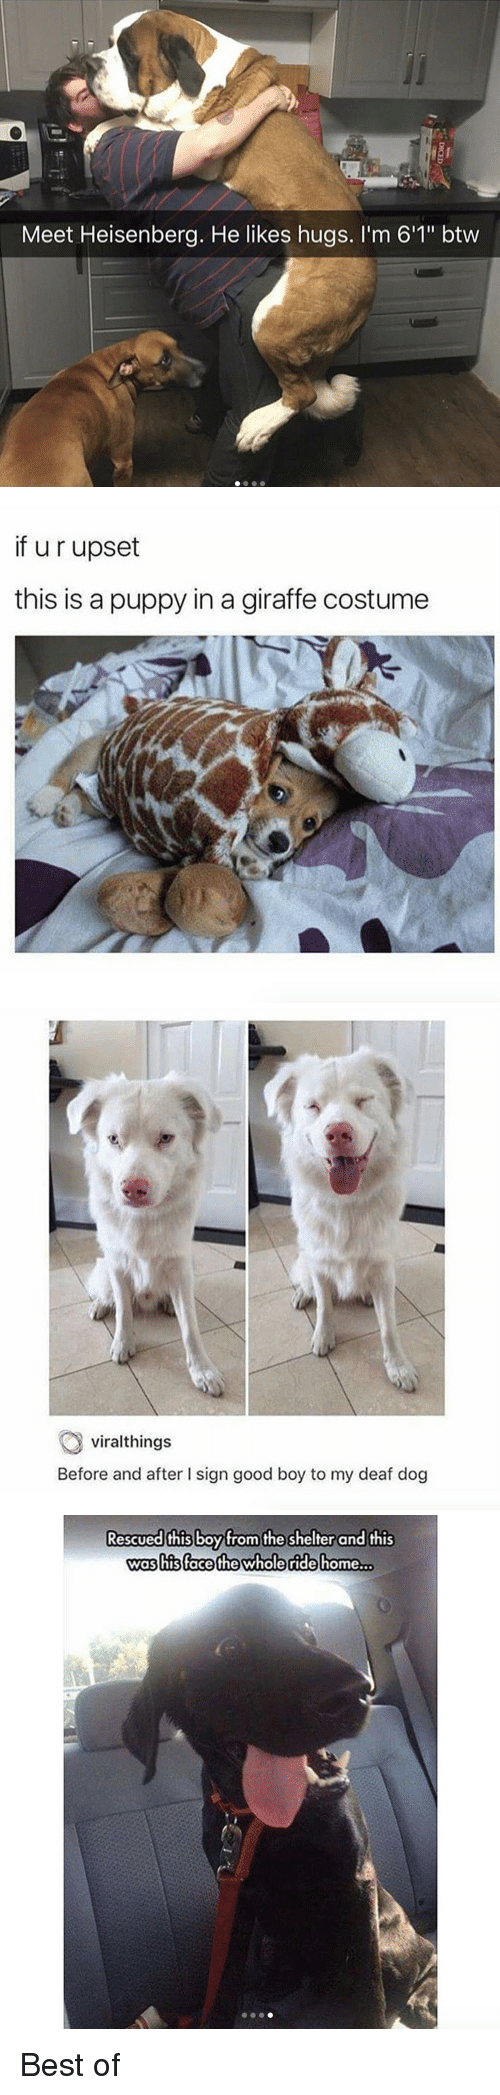 """heisenberg: Meet Heisenberg. He likes hugs. I'm 6'1"""" btw   if u r upset  this is a puppy in a giraffe costume   viralthings  Before and after I sign good boy to my deaf dog   Rescued this boyfrom the shelter and this  was his (face the whole ride home  .. <p>Best of</p>"""